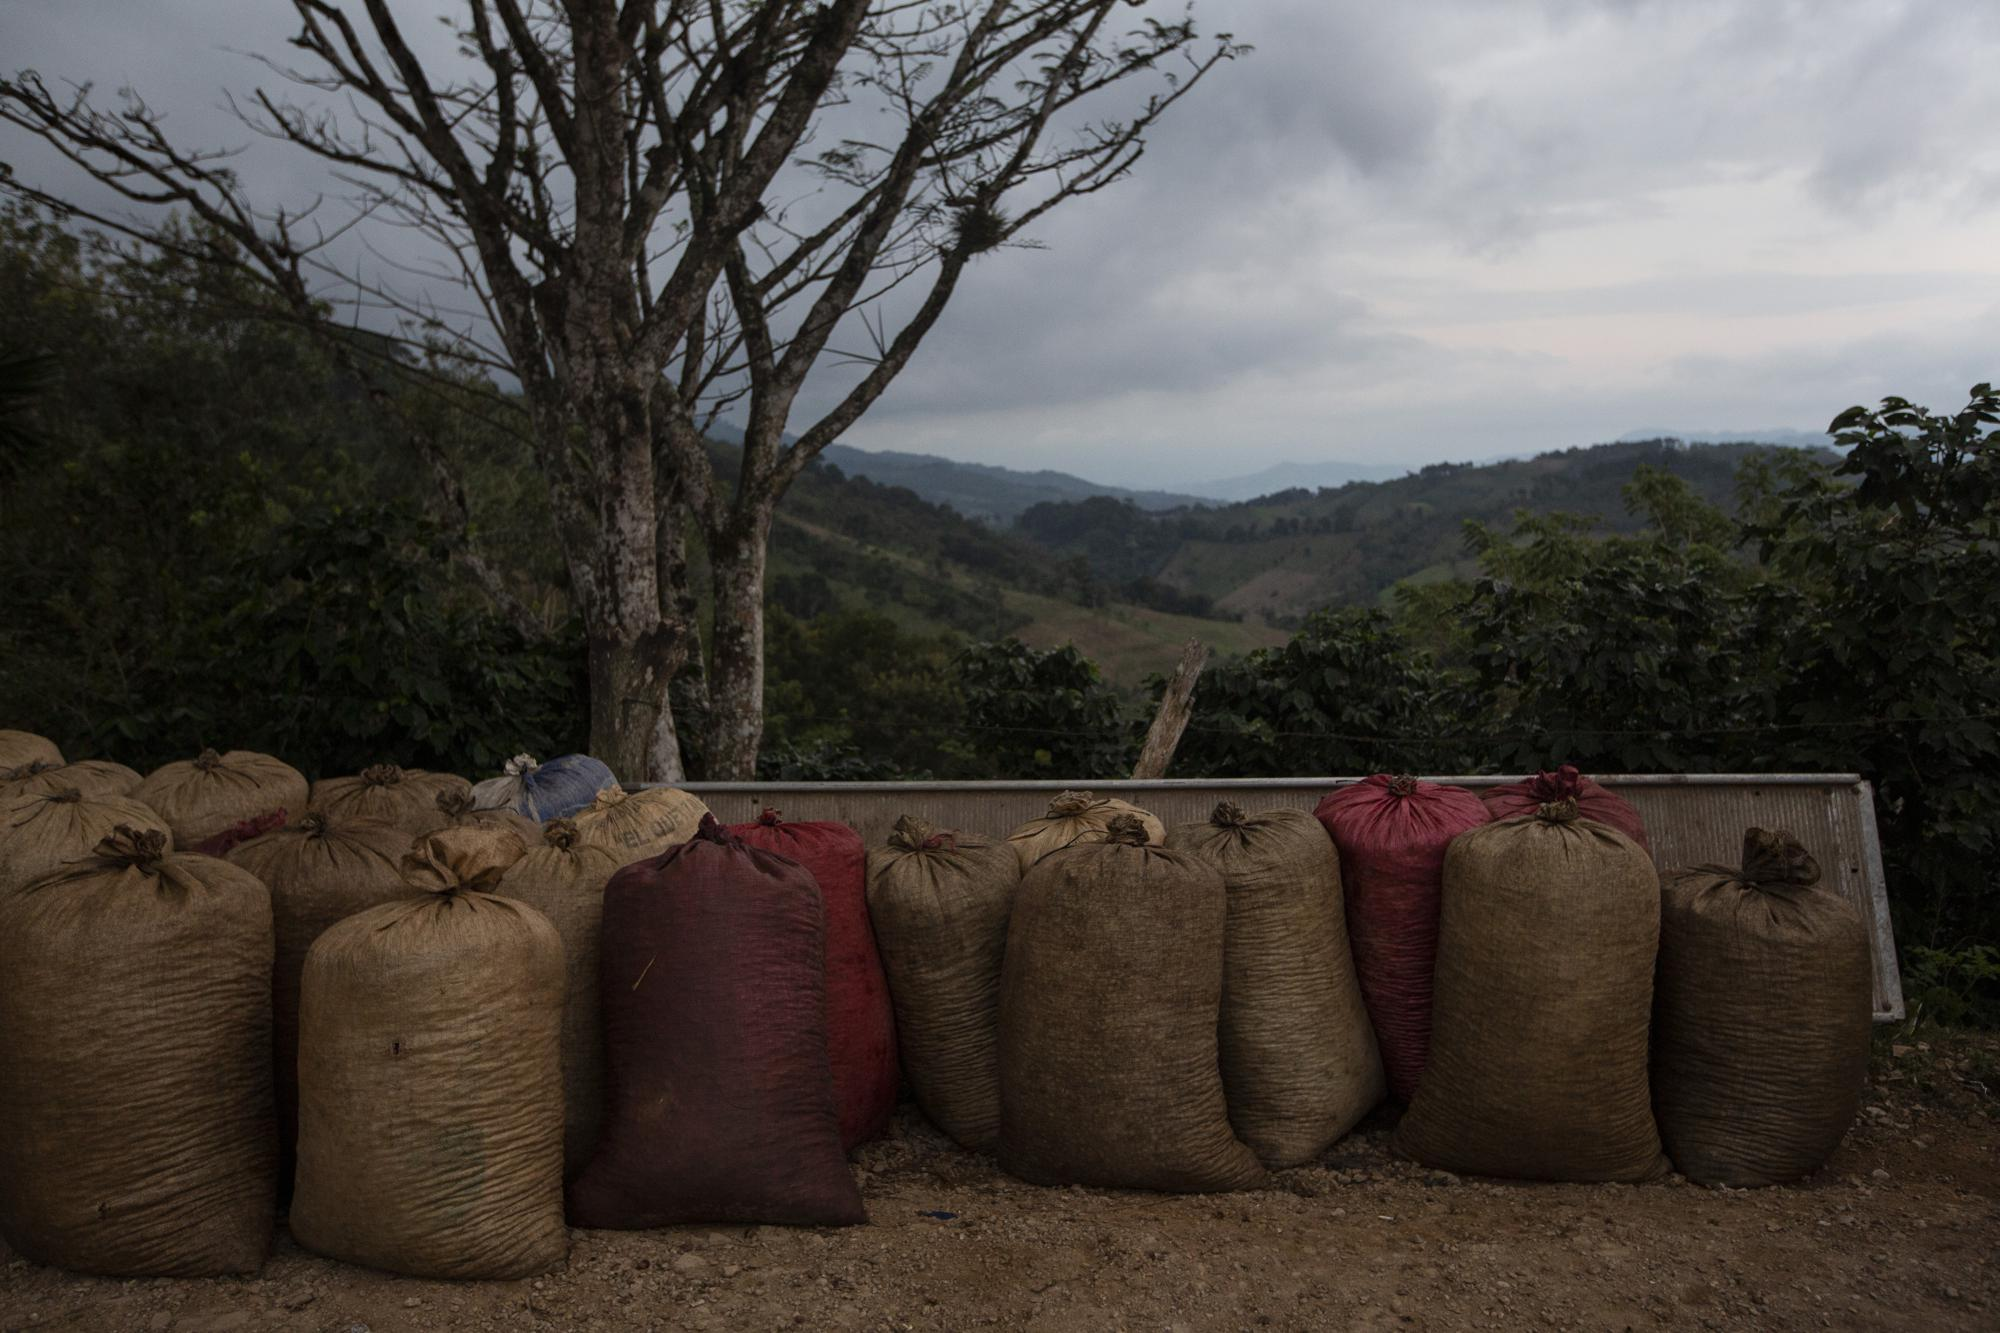 Bags of freshly picked coffee wait to be loaded on a truck in Tizamarte, Guatemala, Wednesday, Dec. 9, 2020. Locals survive on the remittances sent from migrants to Guatemala, where average monthly earnings are less than the cost of the basket of basic goods. (AP Photo/Moises Castillo)